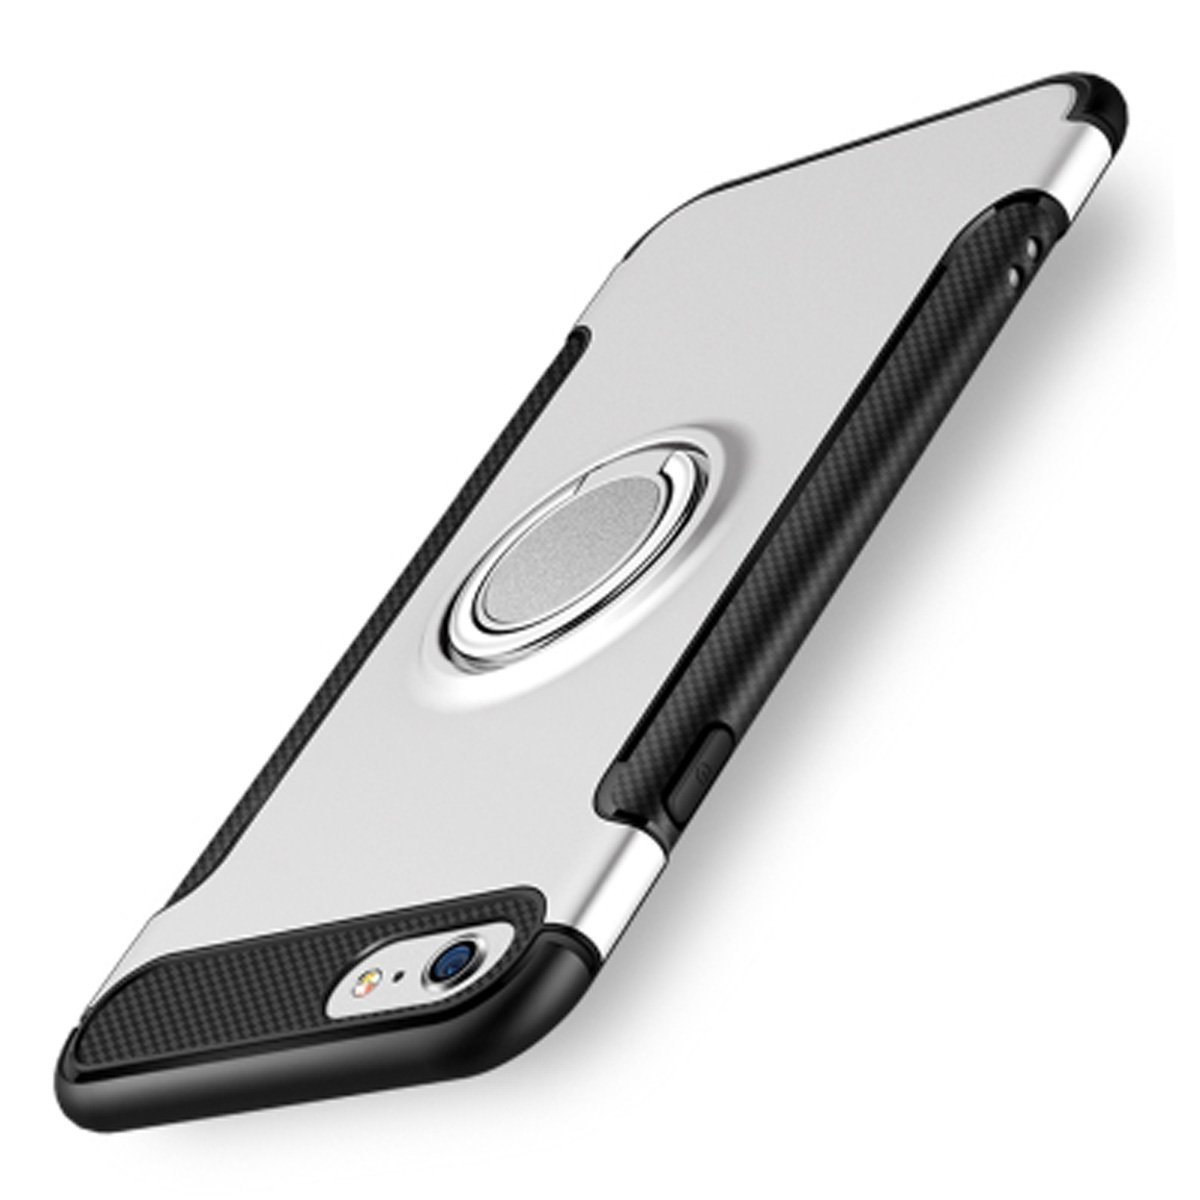 Case for iPhone 7, Luxury Ultra thin Armor Case Cover 360 Rotating Metal Ring Holder Soft TPU Silicone Phone Case[Silver White]